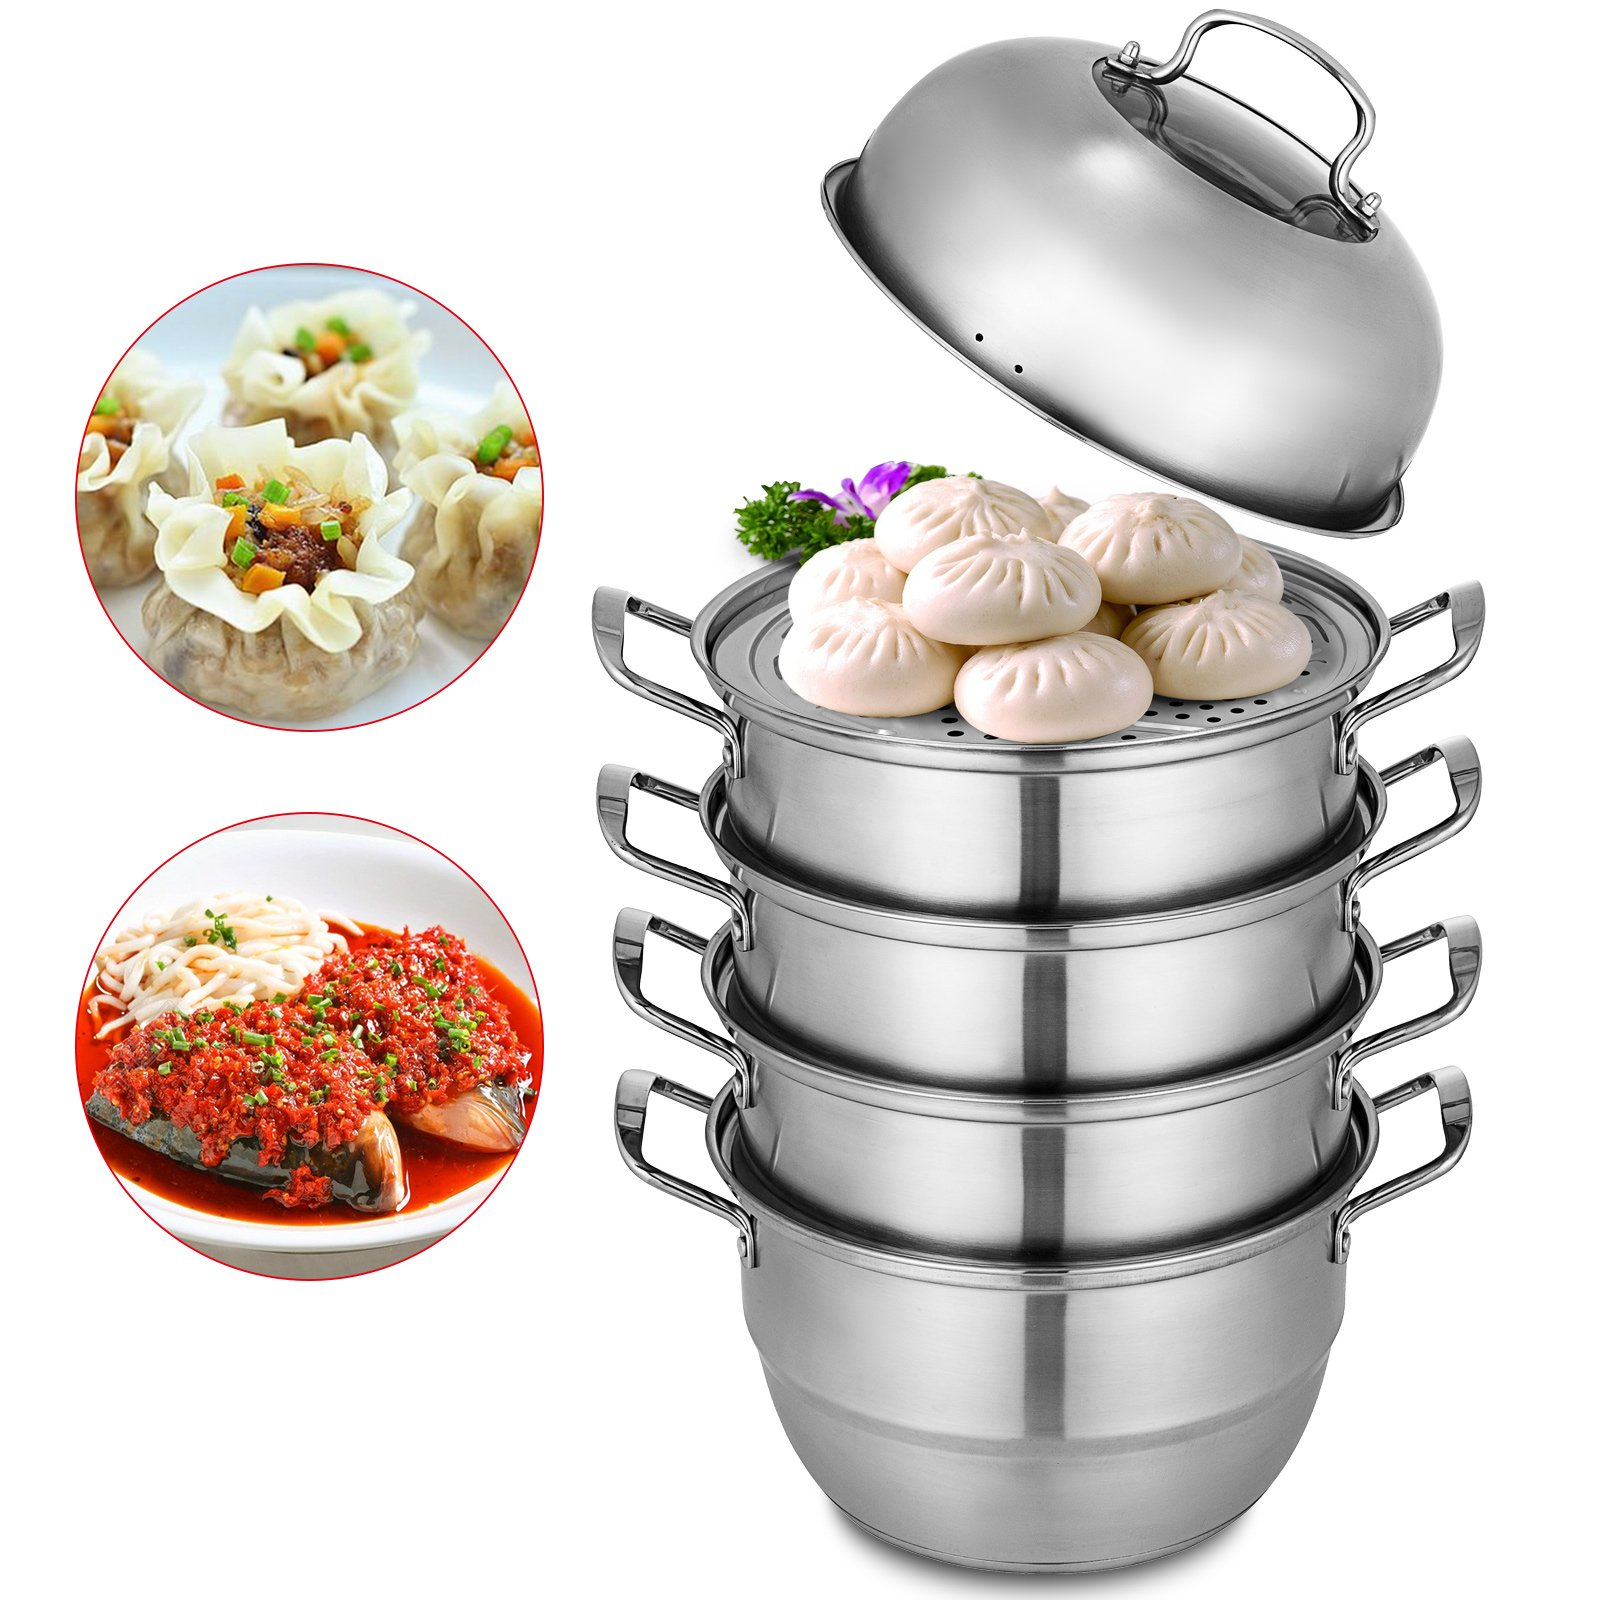 VEVOR Dumpling Steamer Stainless Steel 5 Titer Stainless Steel Steamer Work with Gas Electric Grill Stove Top (Dia 30cm/11.8inch)